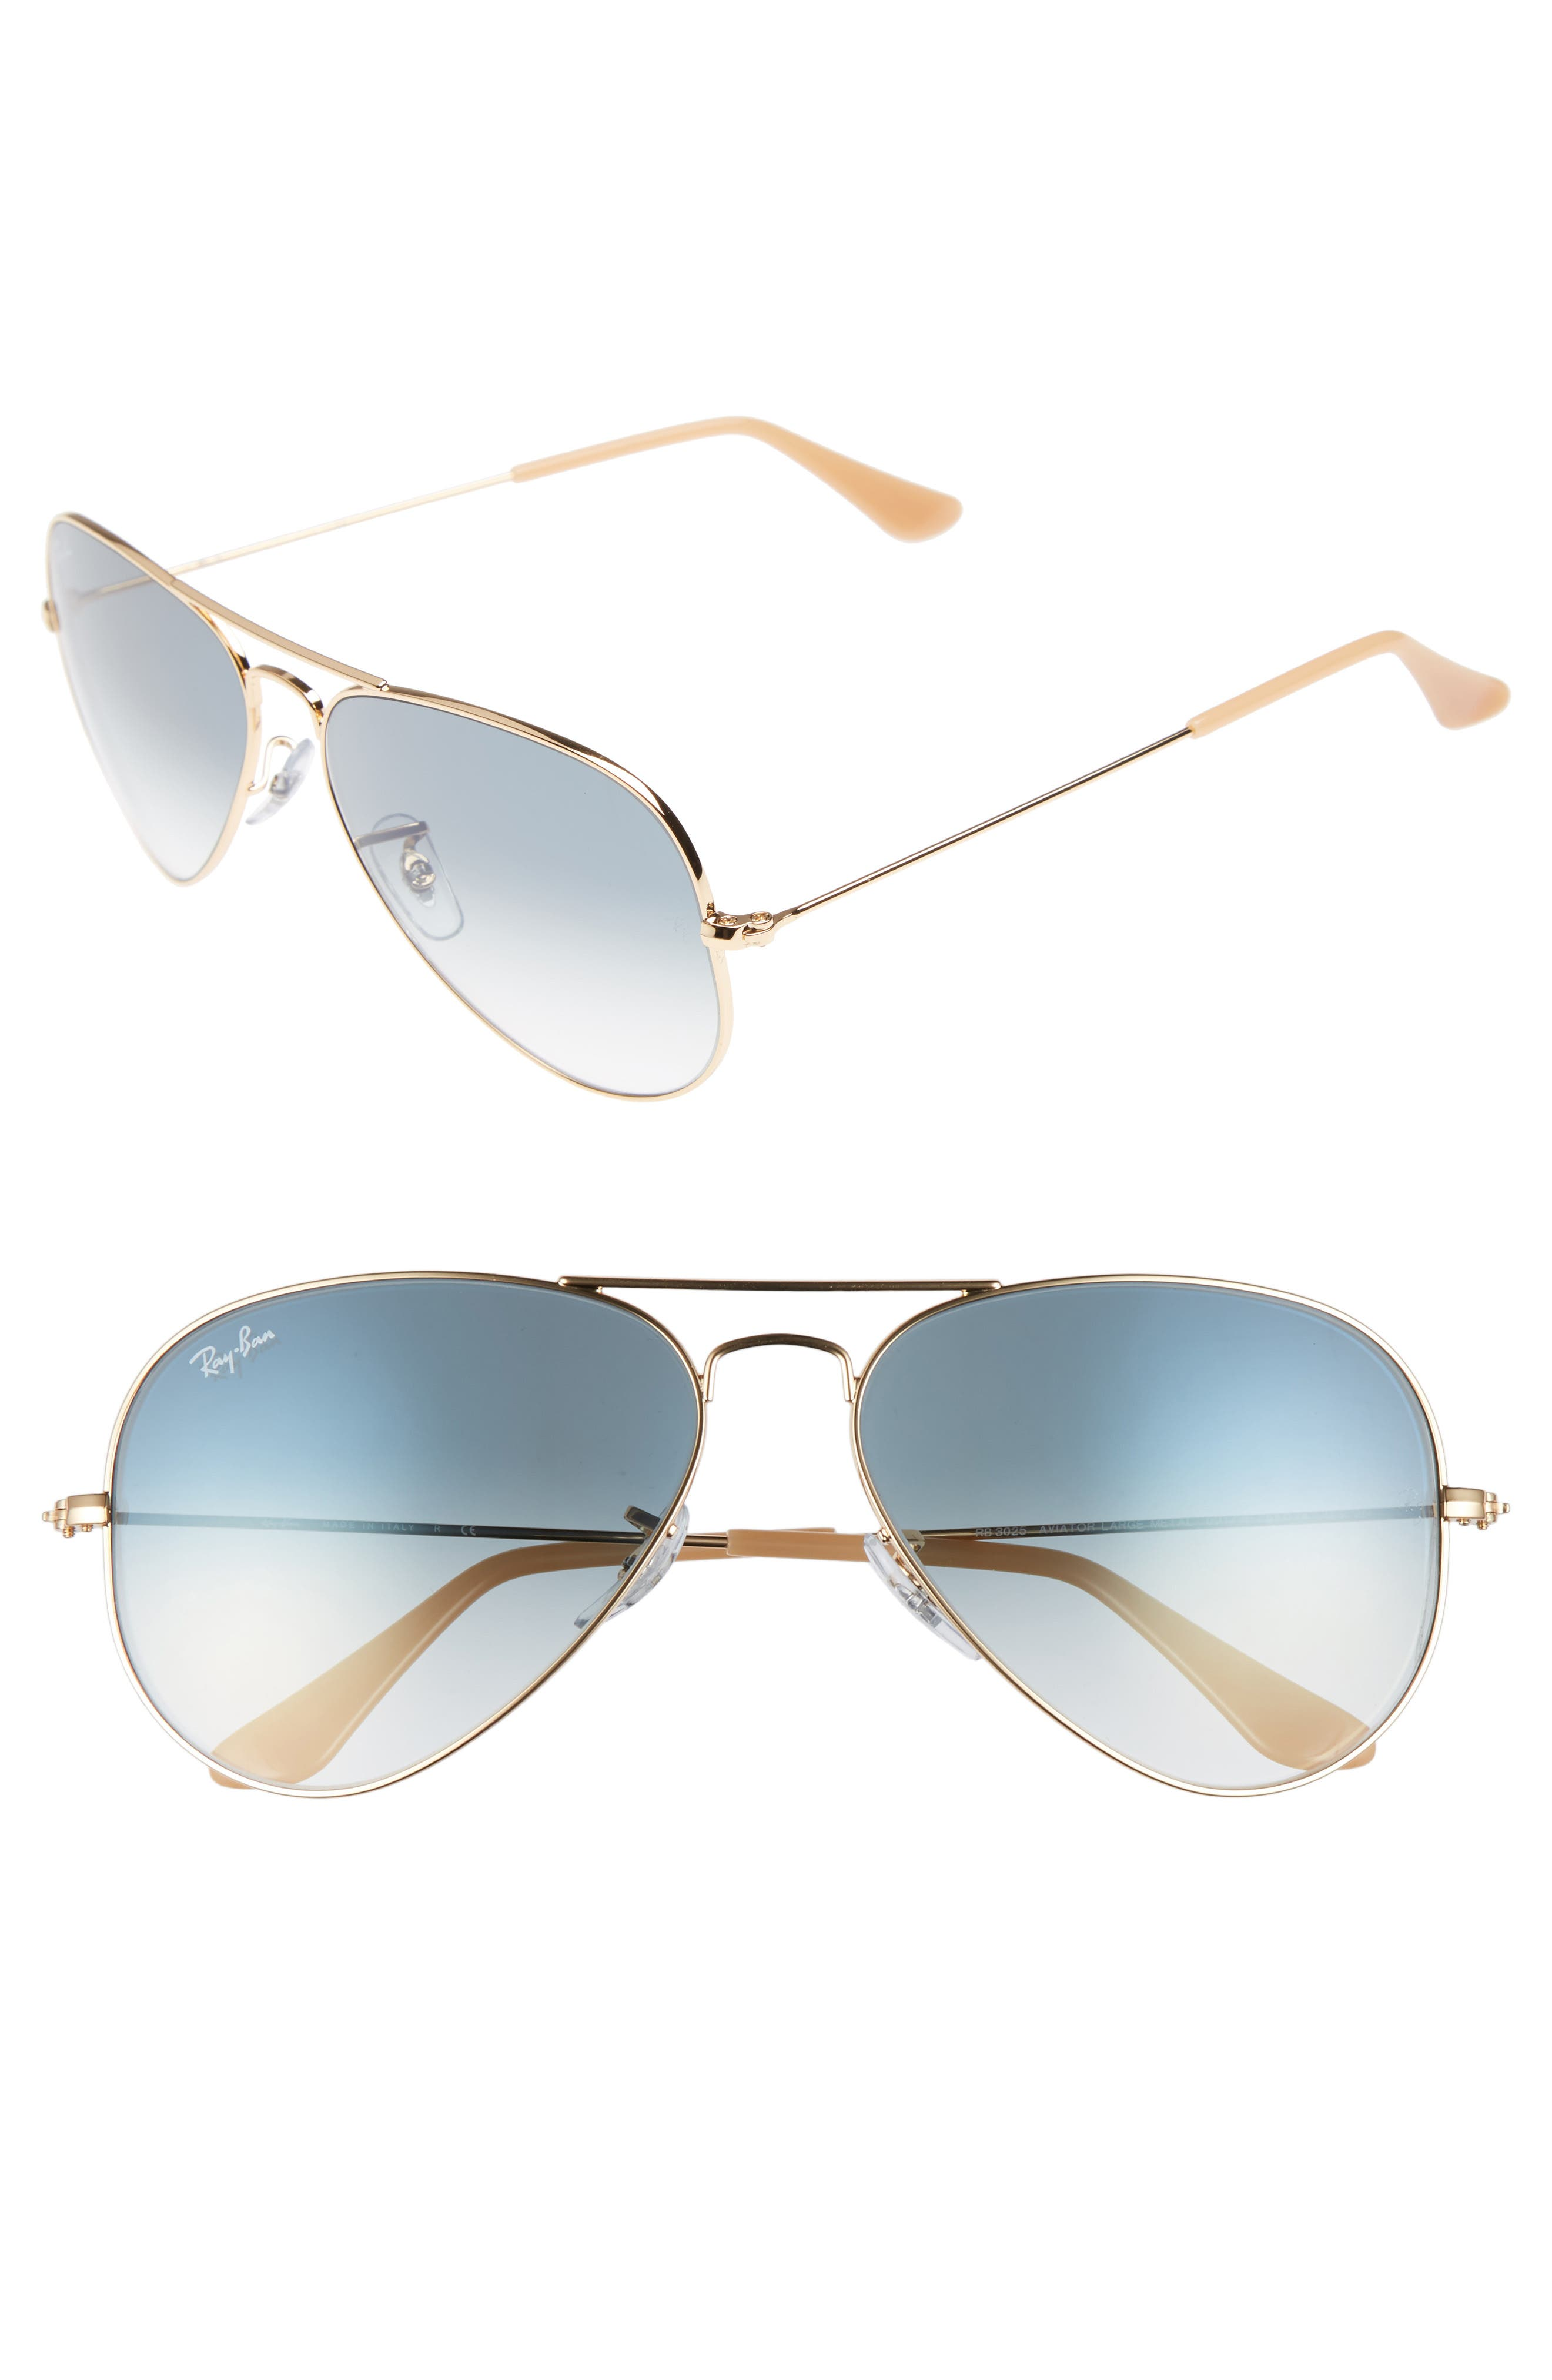 Original Aviator 58mm Sunglasses,                         Main,                         color, Matte Gold/ Blue Mirror